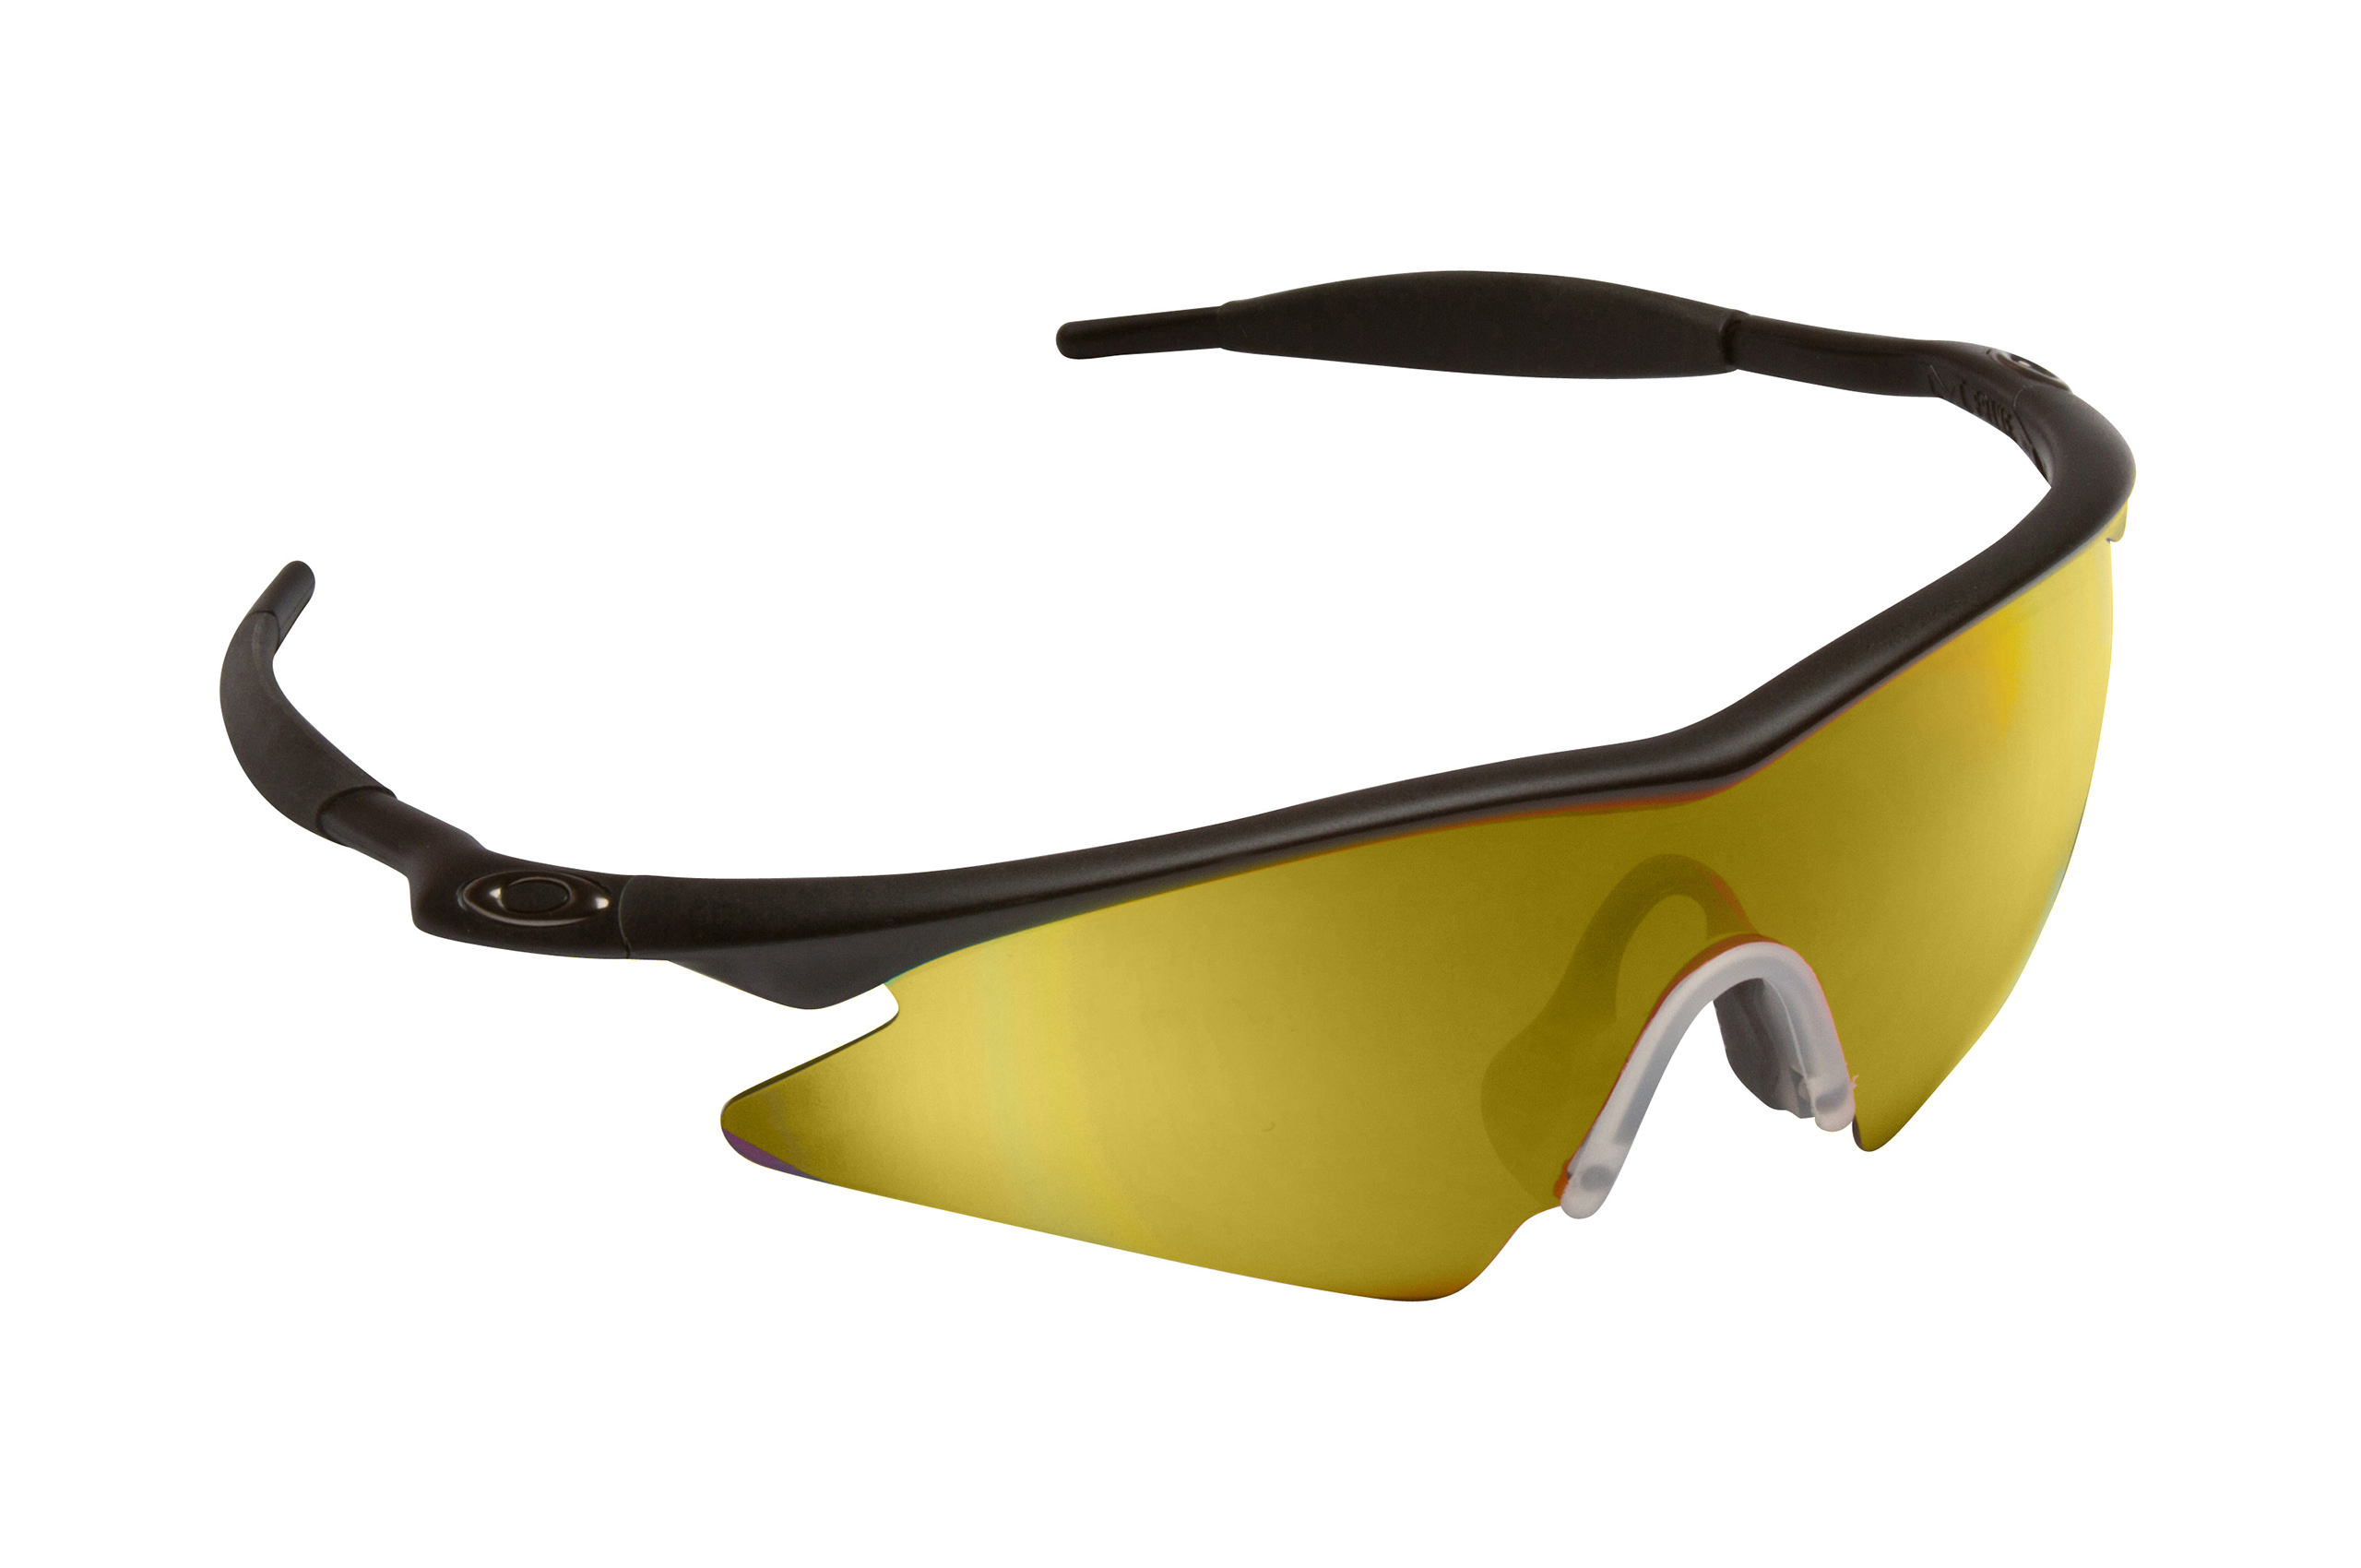 605e290910 M Frame Sweep Replacement Lenses by SEEK OPTICS to fit OAKLEY ...